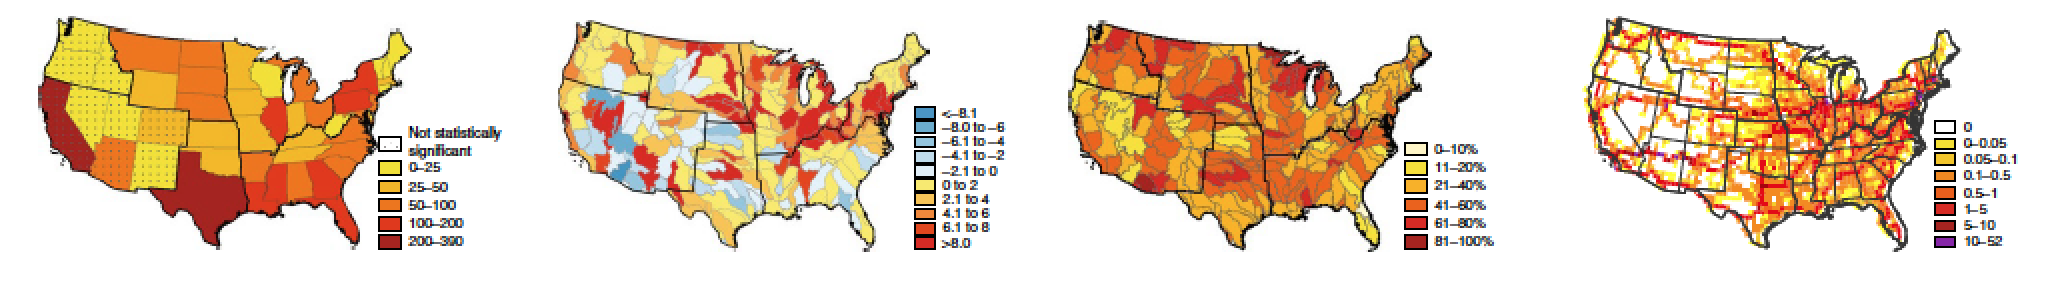 Envisioning a better world with climate impact modeling